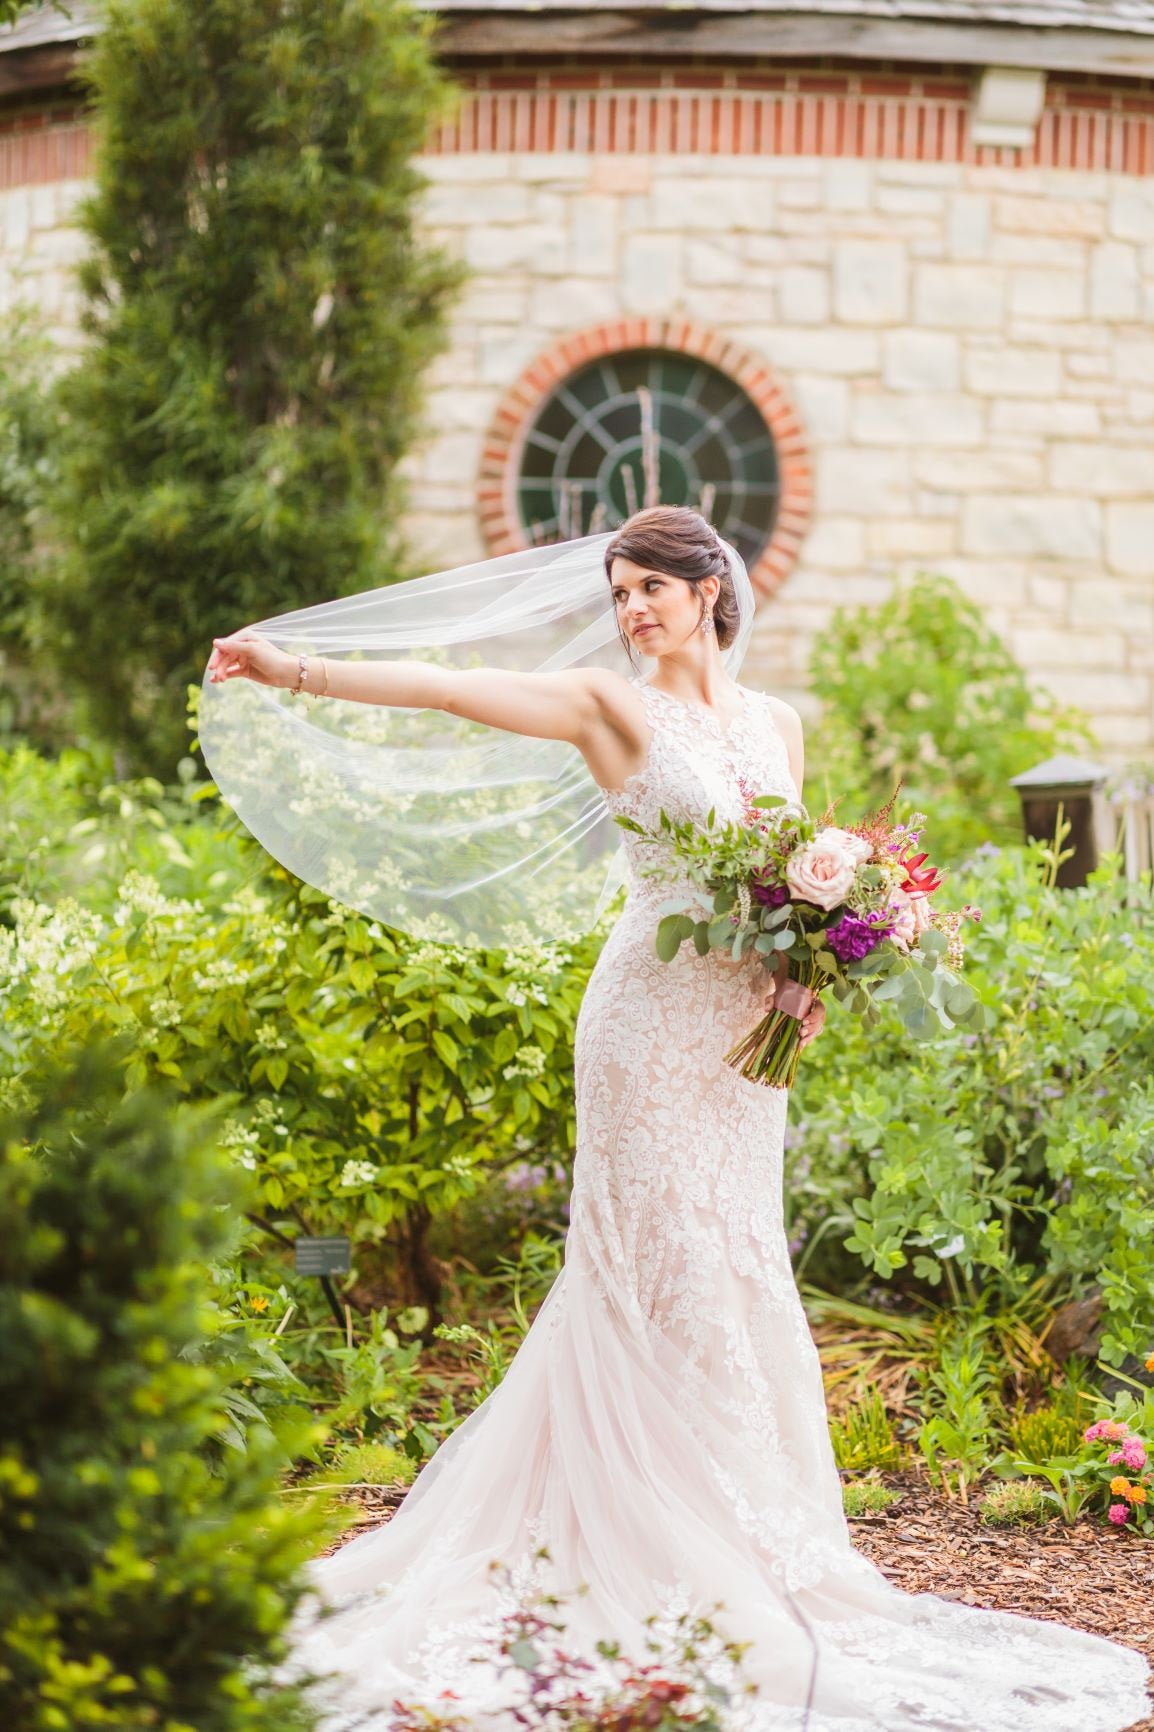 Garden Wedding: Lace Dress and Simple Fingertip Veil by One Blushing Bride